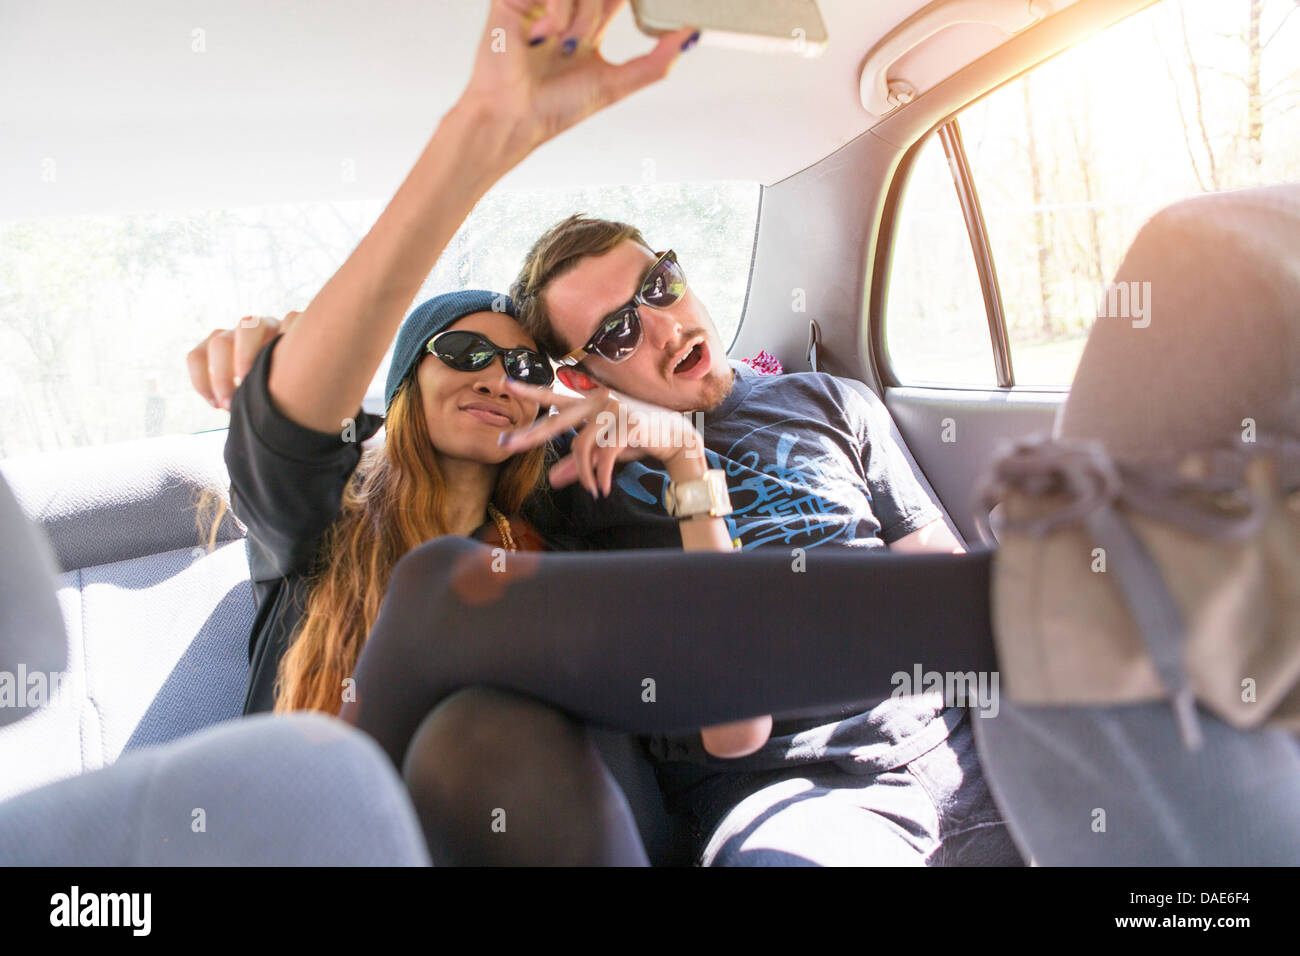 Couple on backseat in car photographing themselves - Stock Image